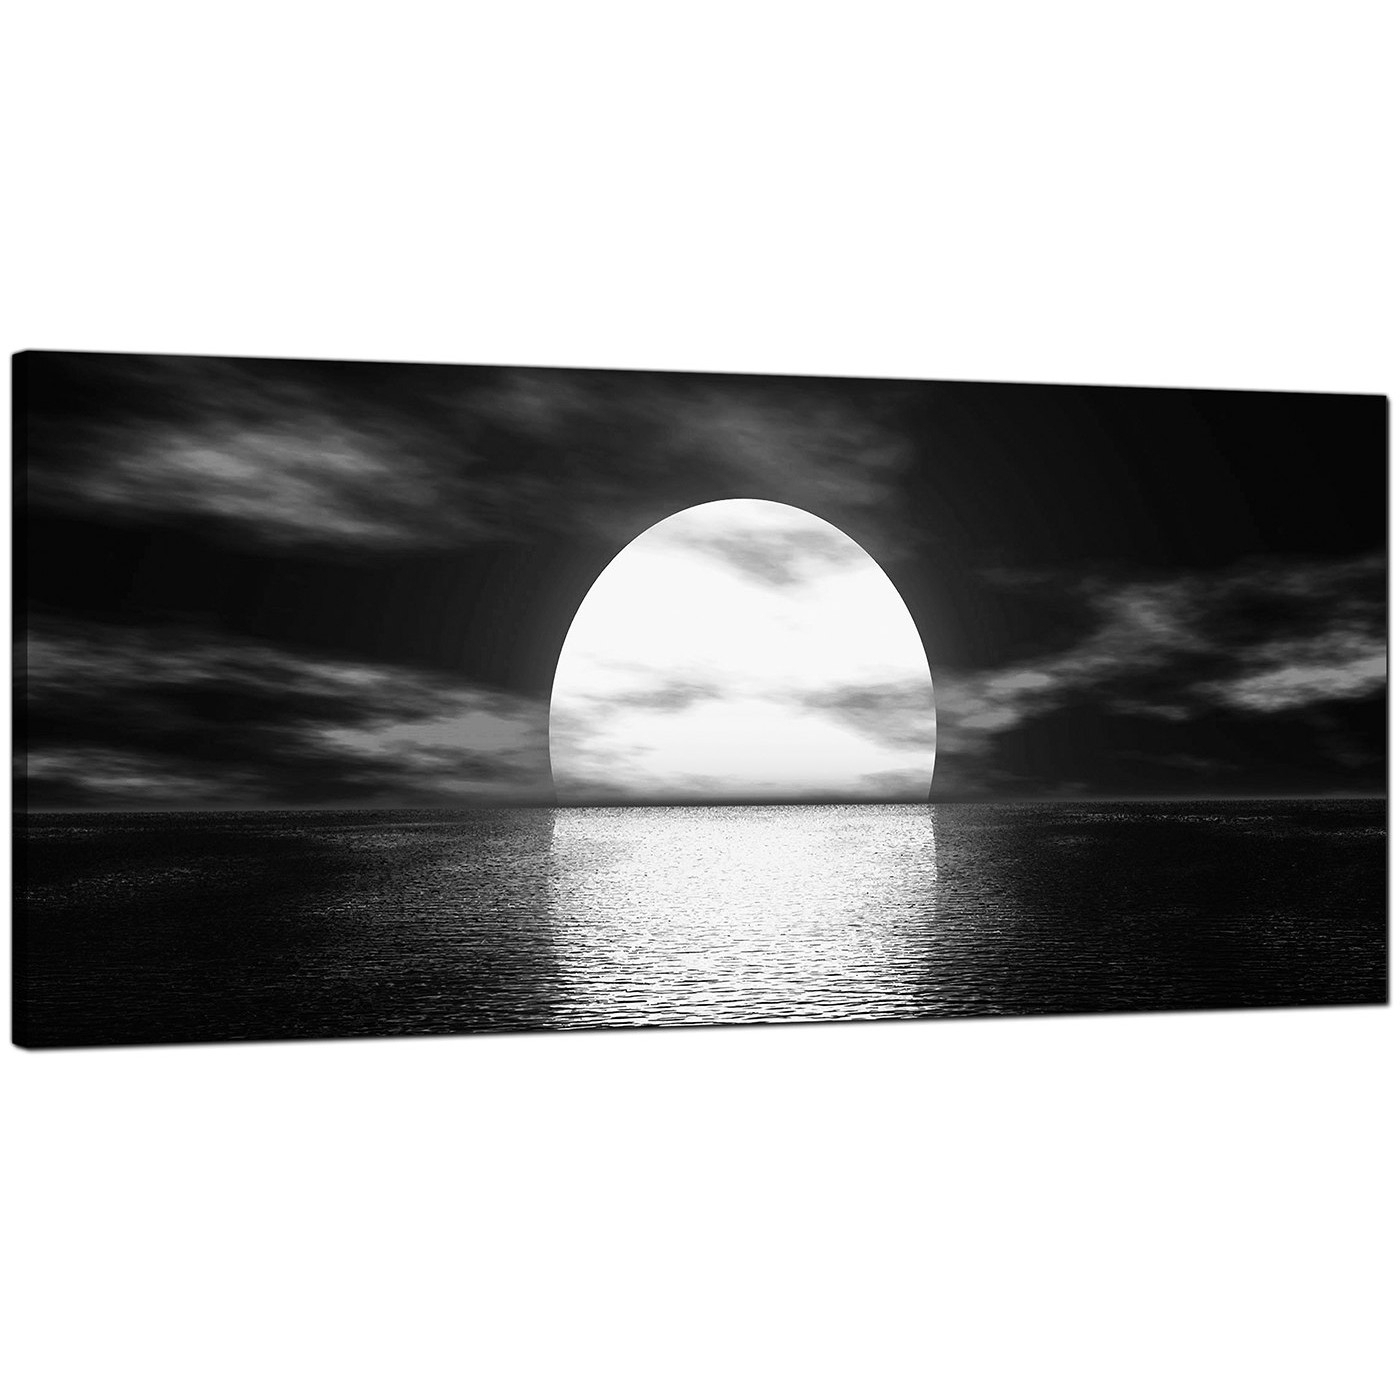 Modern Black And White Canvas Wall Art Of An Ocean Sunset Inside Newest Black And White Canvas Wall Art (View 9 of 15)